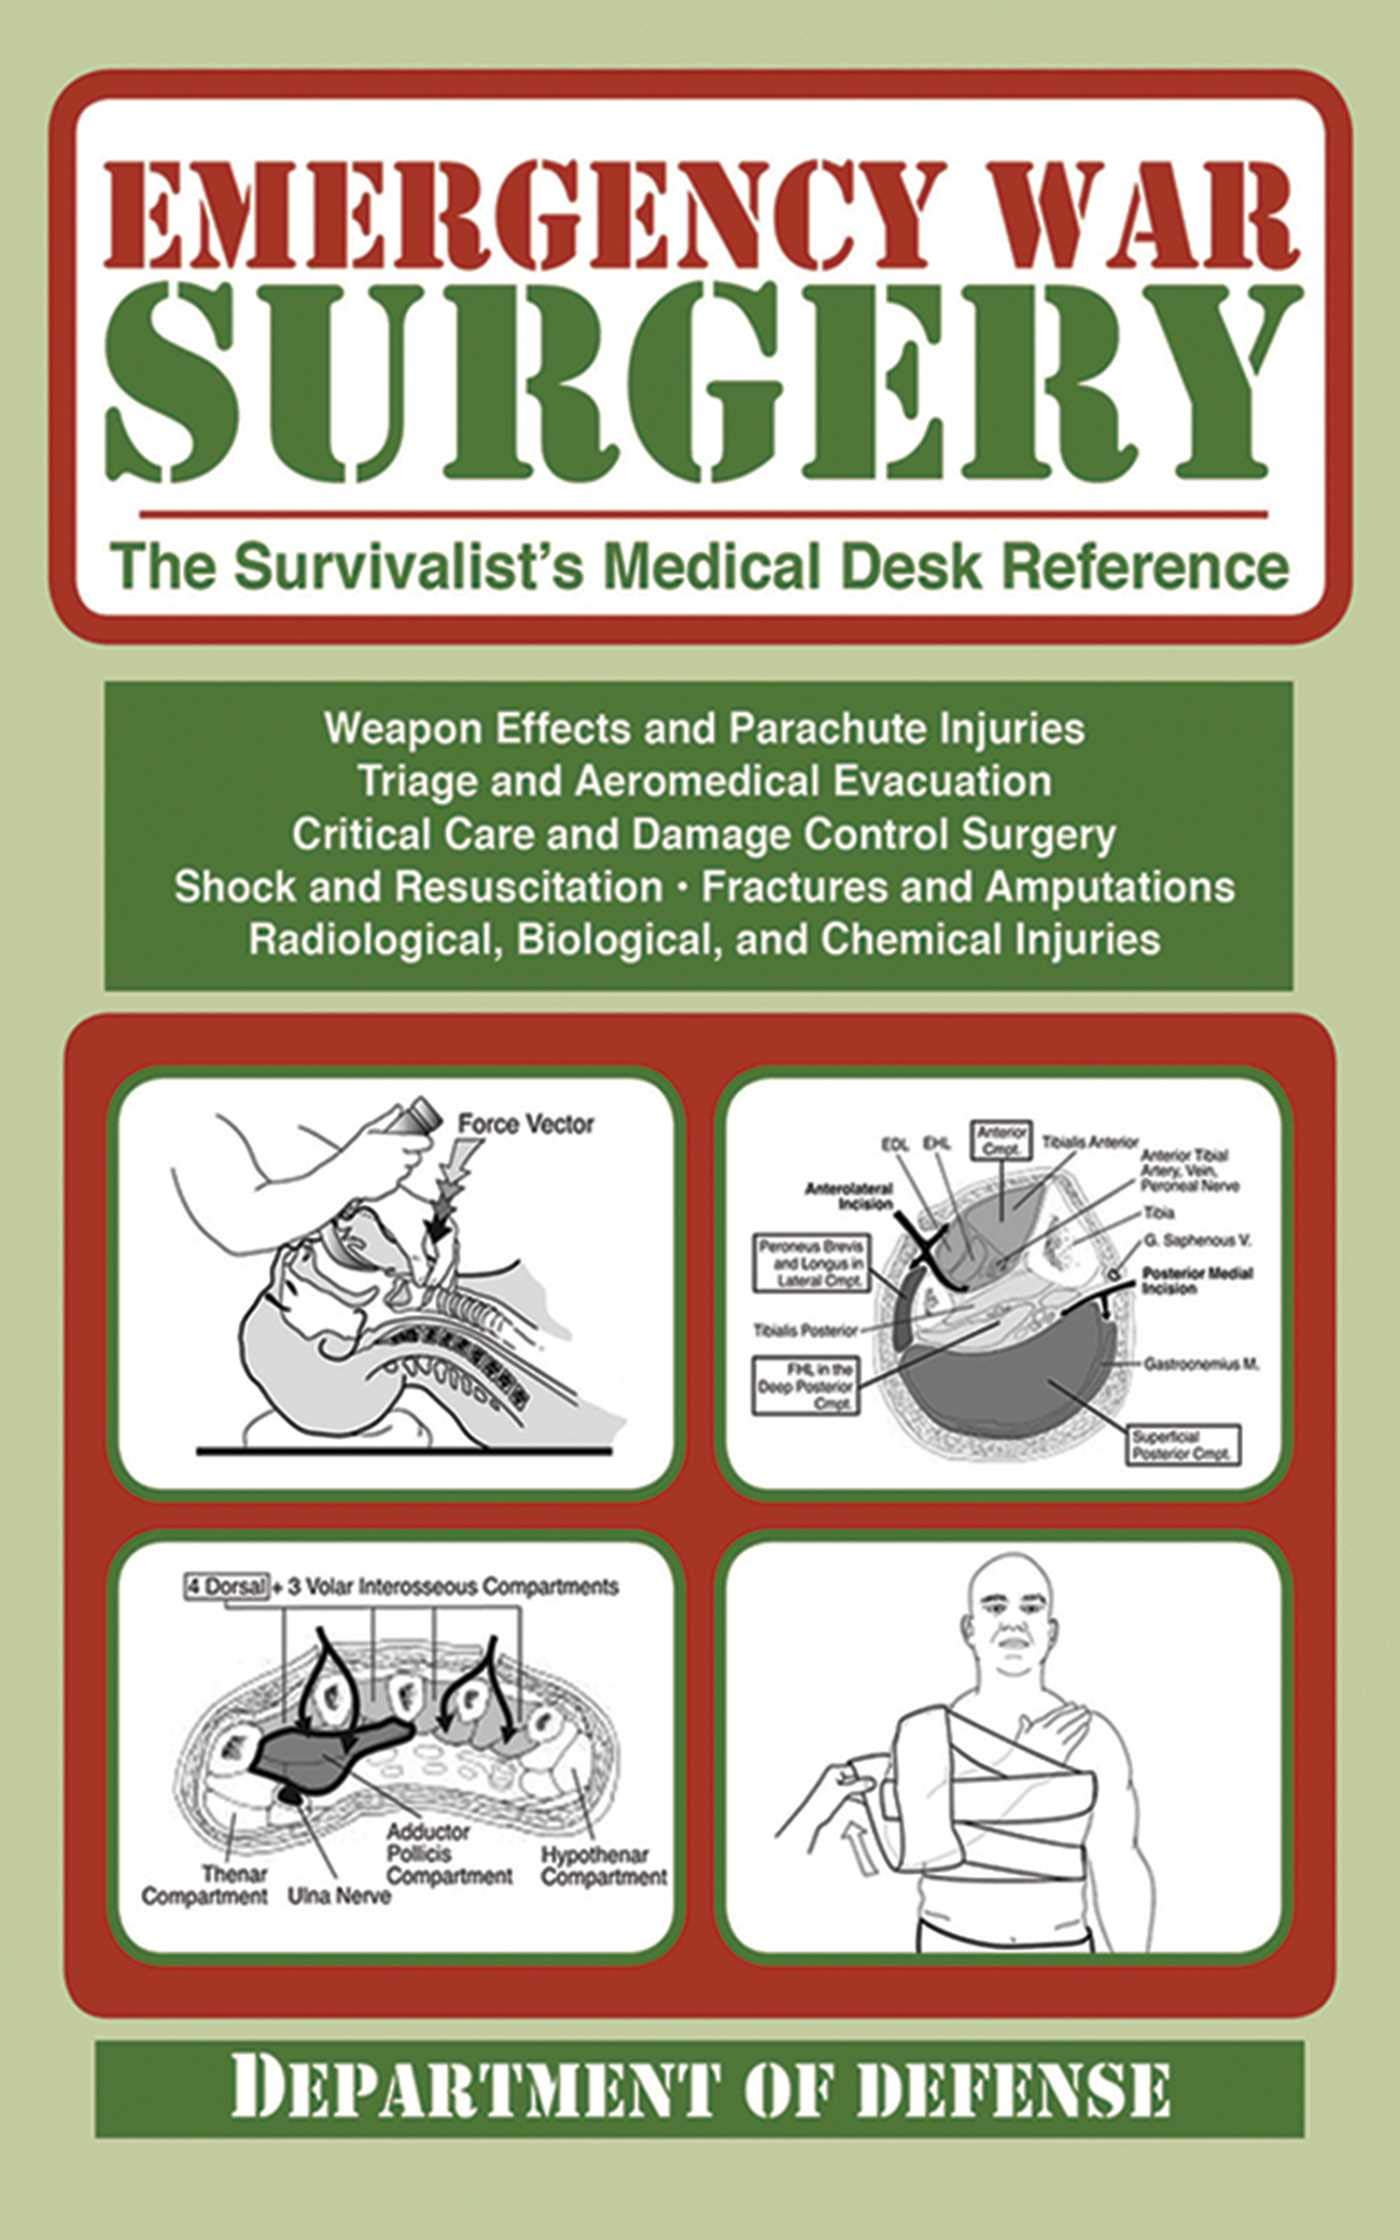 Emergency War Surgery: The Survivalist's Medical Desk Reference by Skyhorse